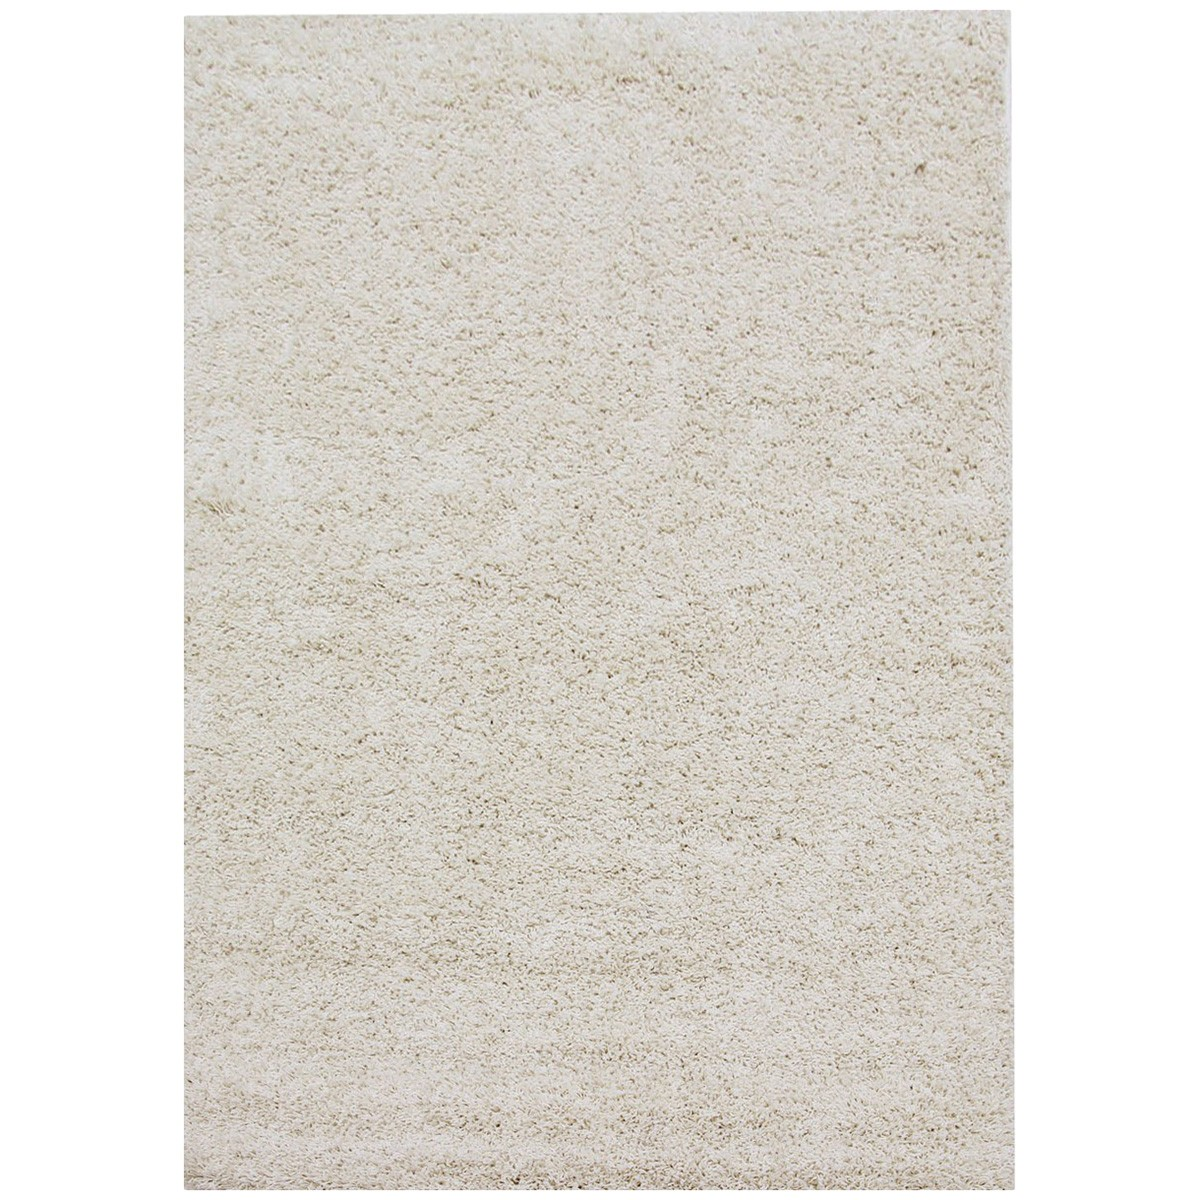 Notes Plain Colour Turkish Made Shag Rug, 170x120cm, Ivory